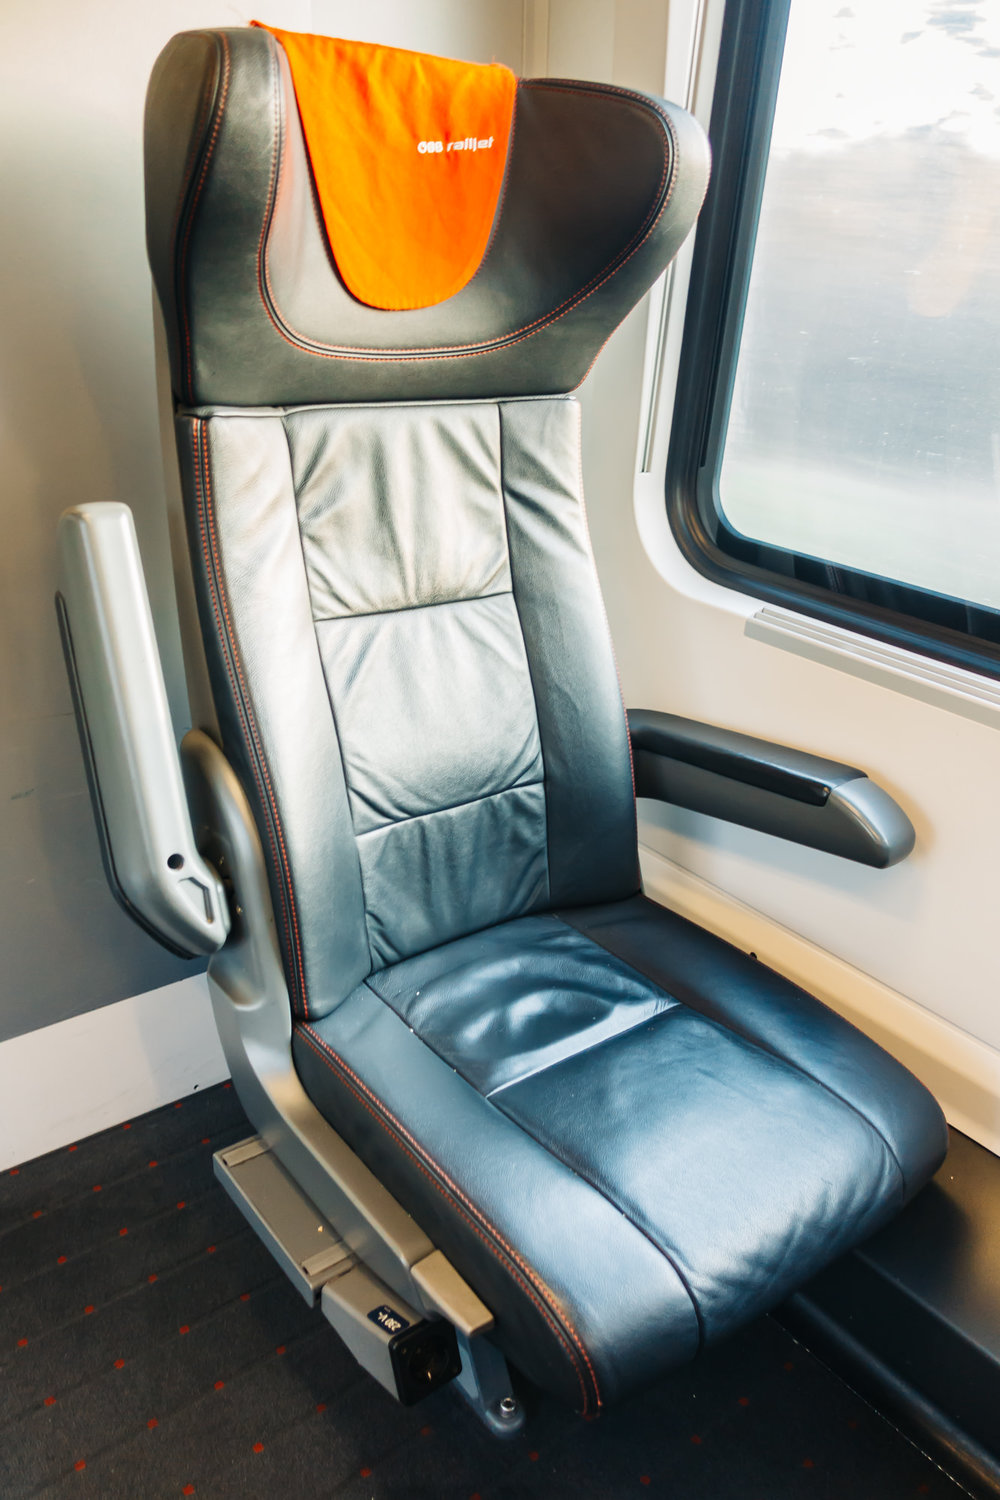 First Class seats also had outlets